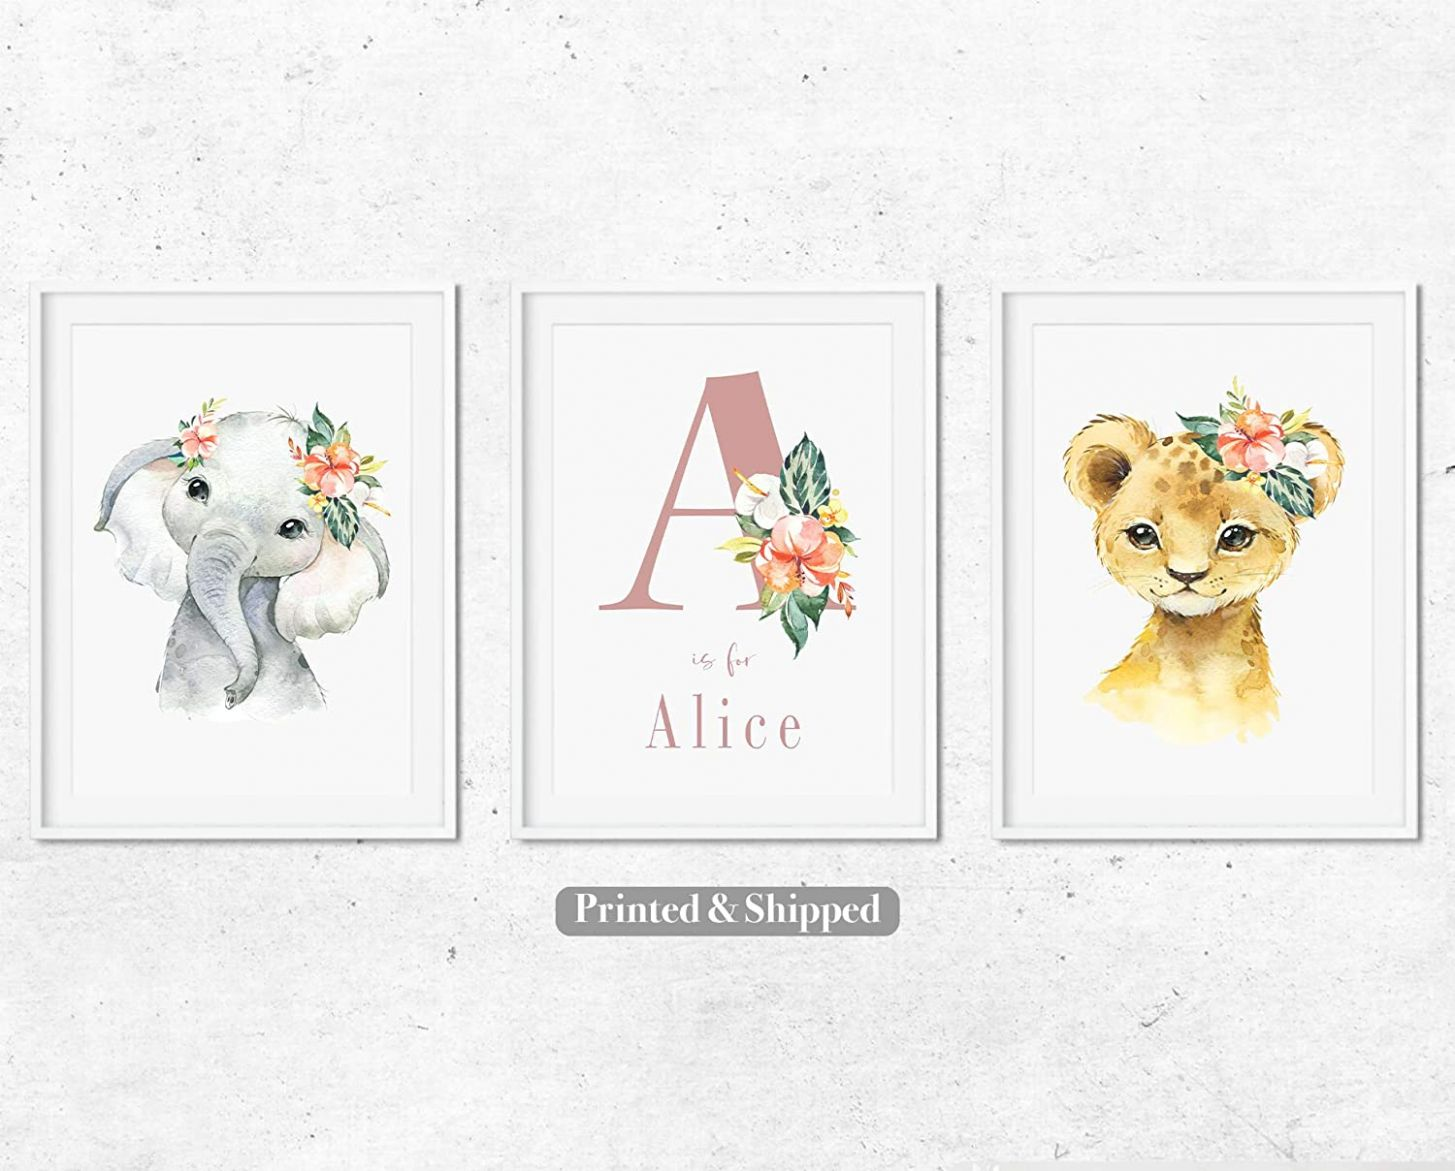 Set of 12 Nursery Wall Posters for Baby's Room, Personalised Girls Nursery  Print,Nursery Room Decor,Elephant, Cub and Name Prints,12 size options